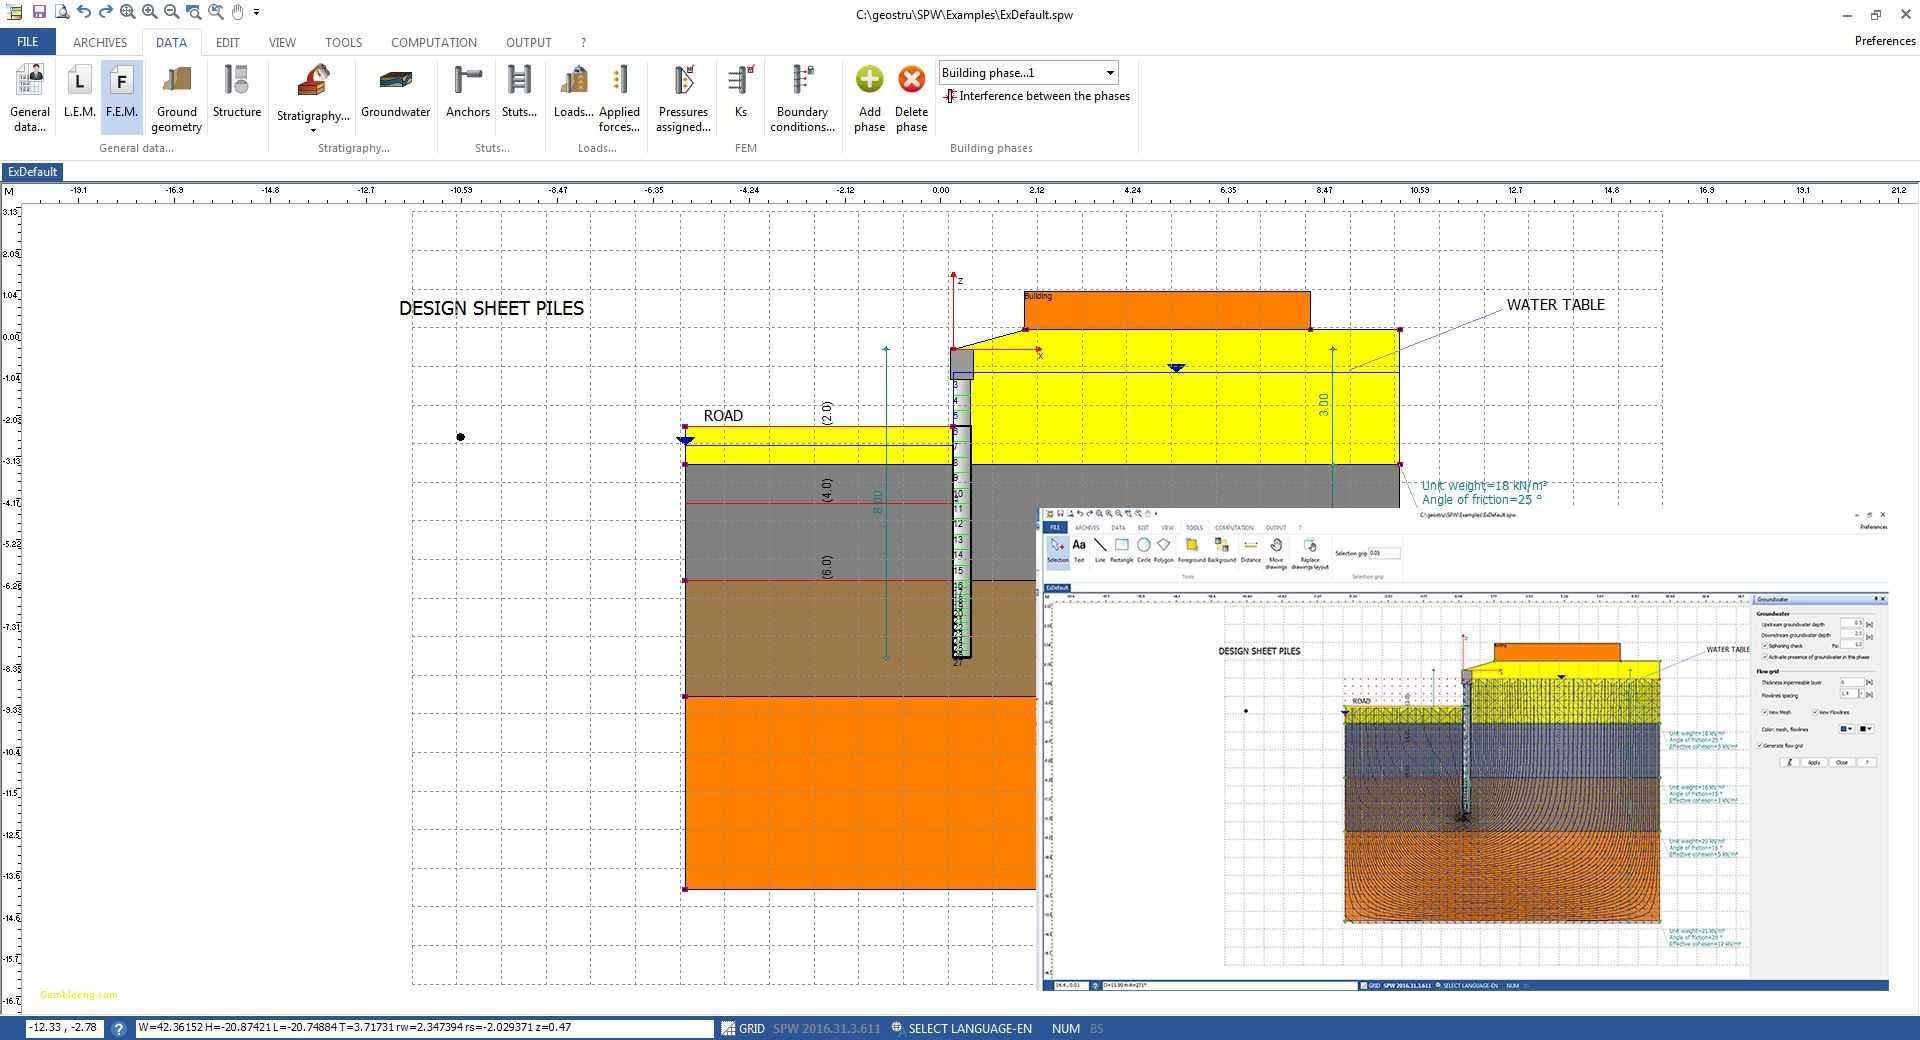 Sheet Pile Wall Design Spreadsheet With Sheet Pile Wall Design Spreadsheet  Awal Mula